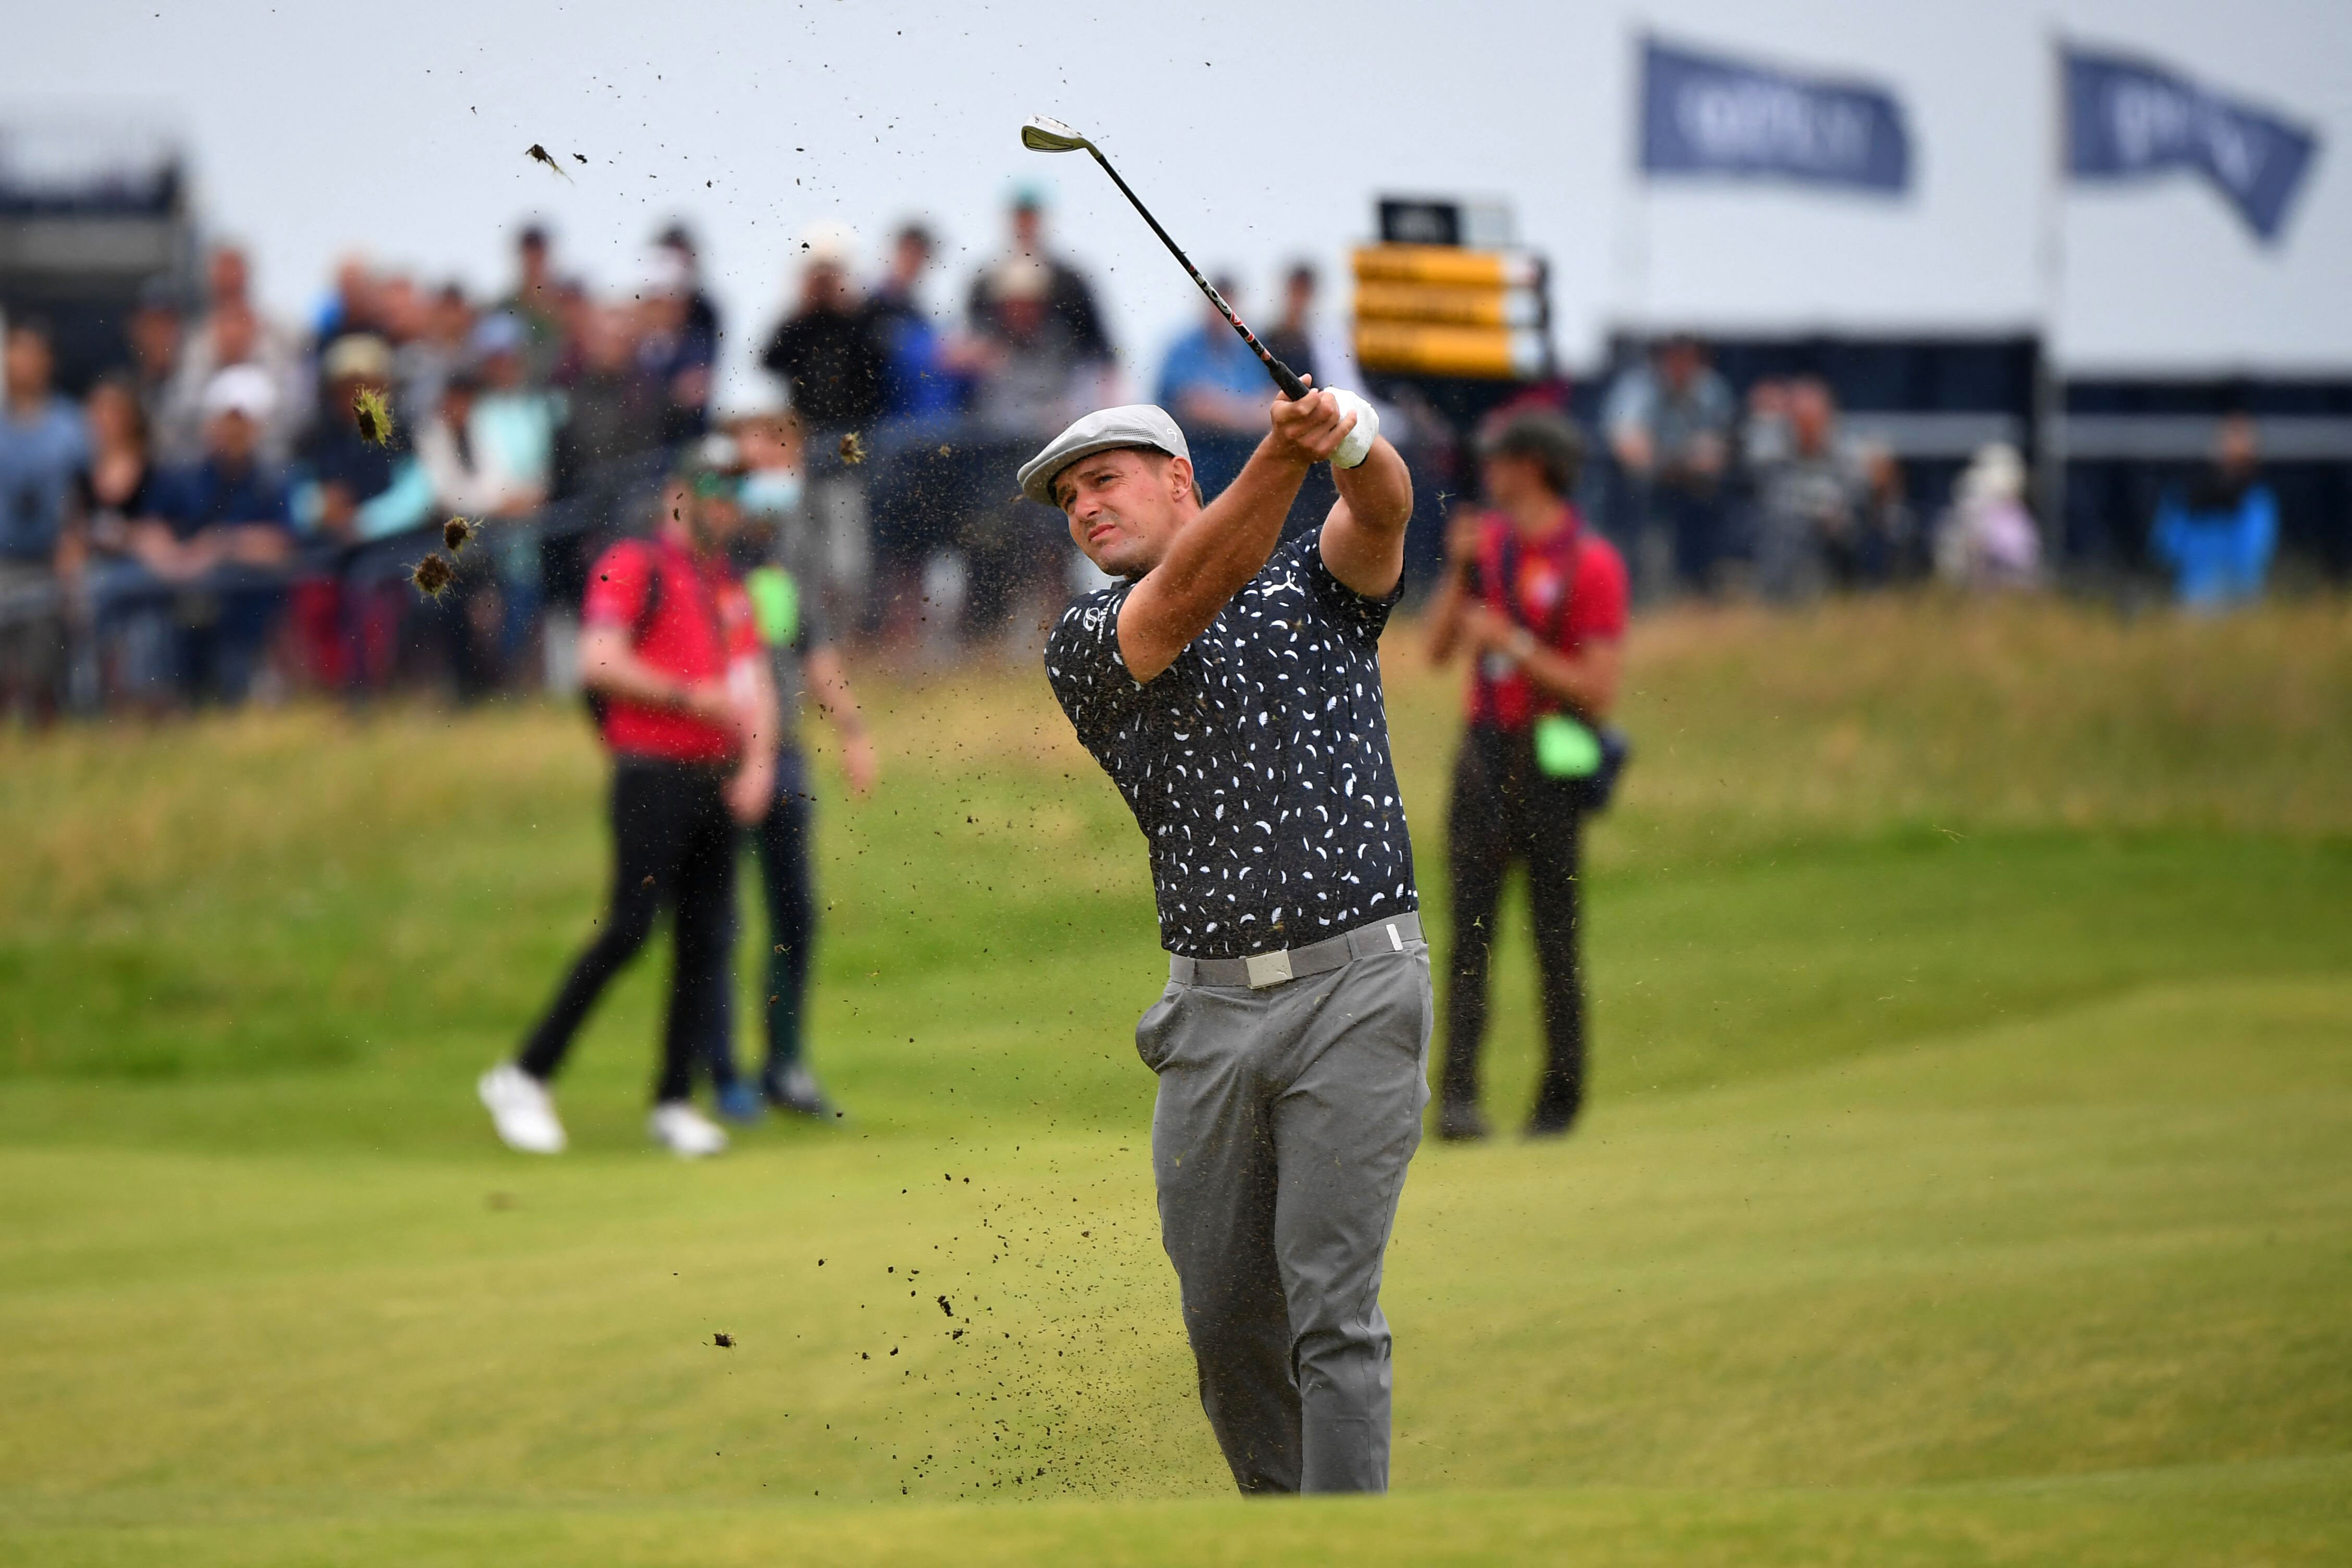 Bryson DeChambeau is 'living on the razor's edge,' but for now his driver 'sucks' at the Open